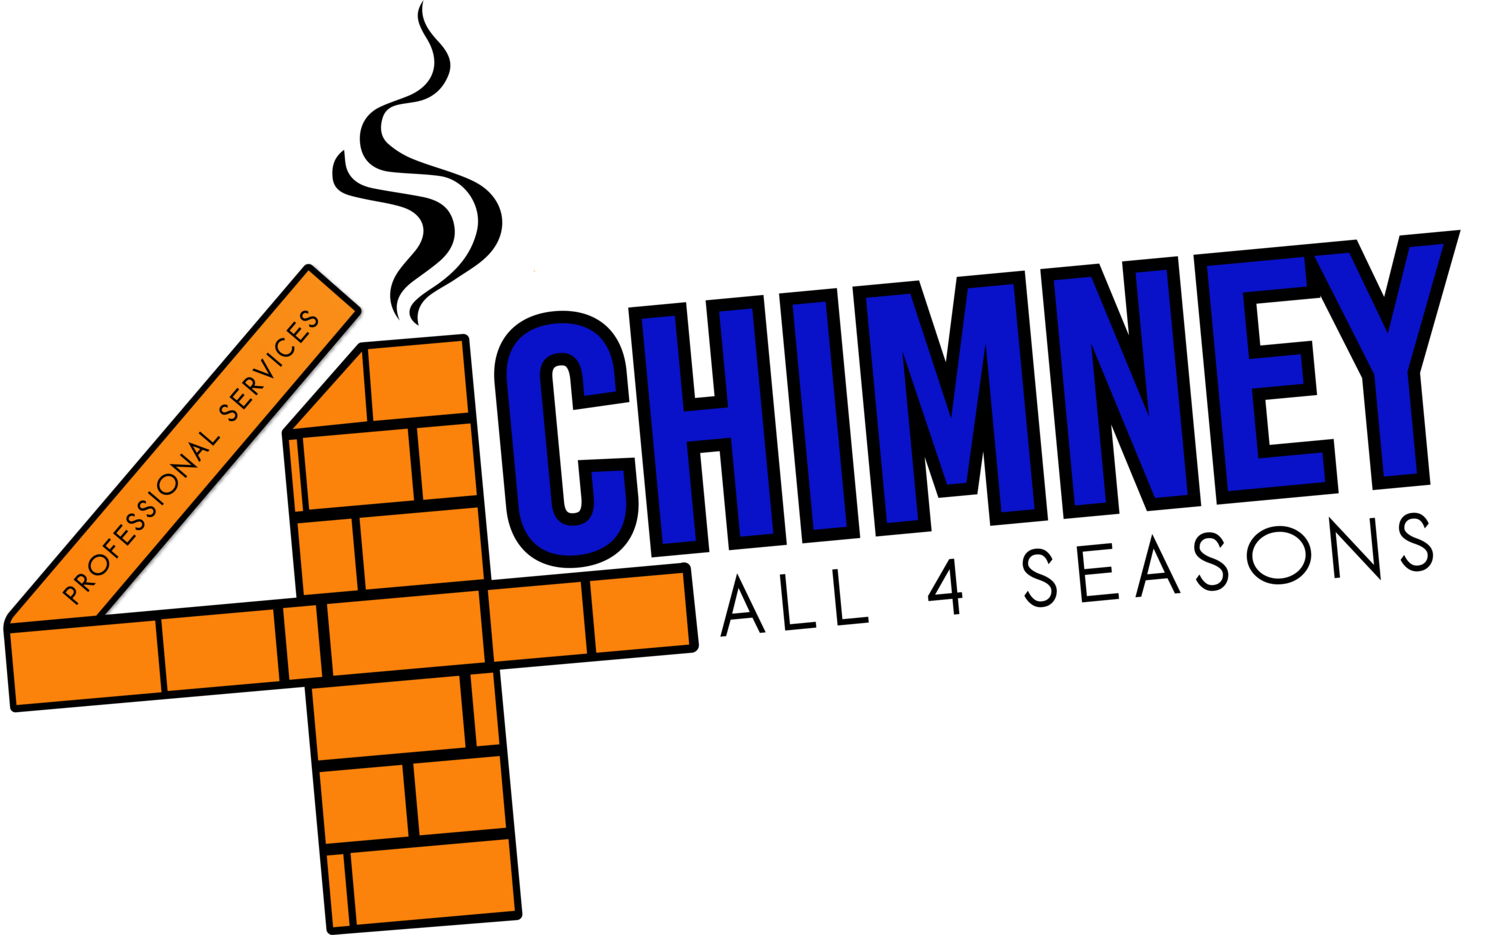 All seasons professional chimney. Fireplace clipart outdoor fireplace